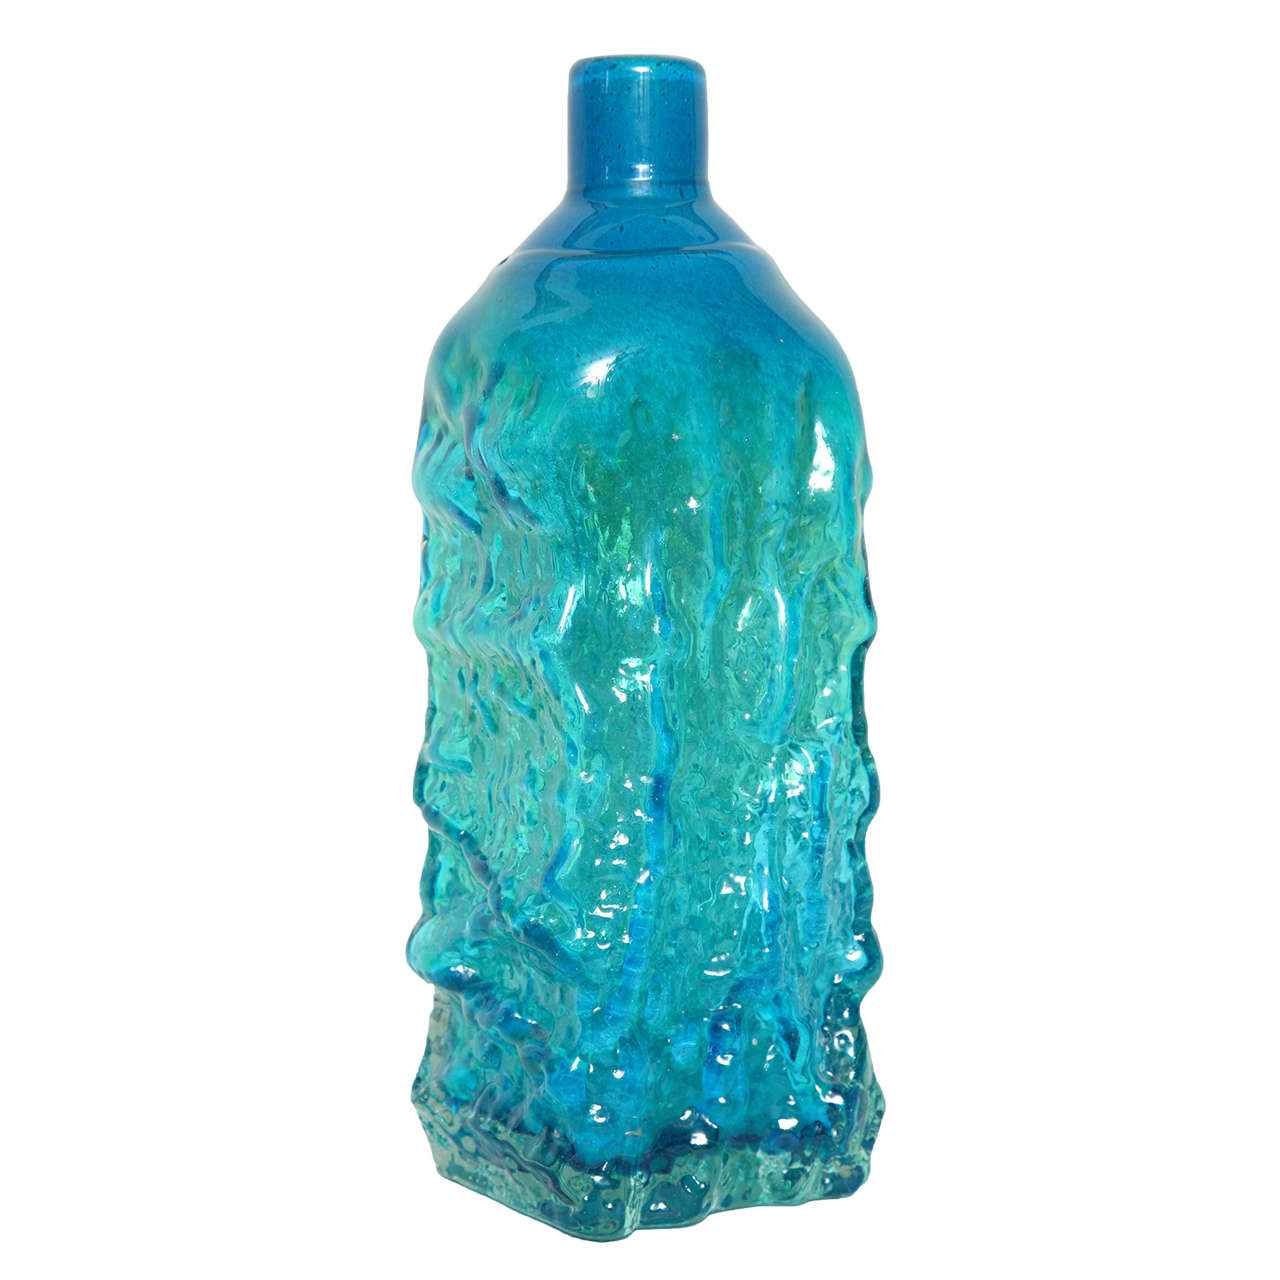 Studio glass bottle vase designed by michael harris at 1stdibs studio glass bottle vase designed by michael harris for sale reviewsmspy